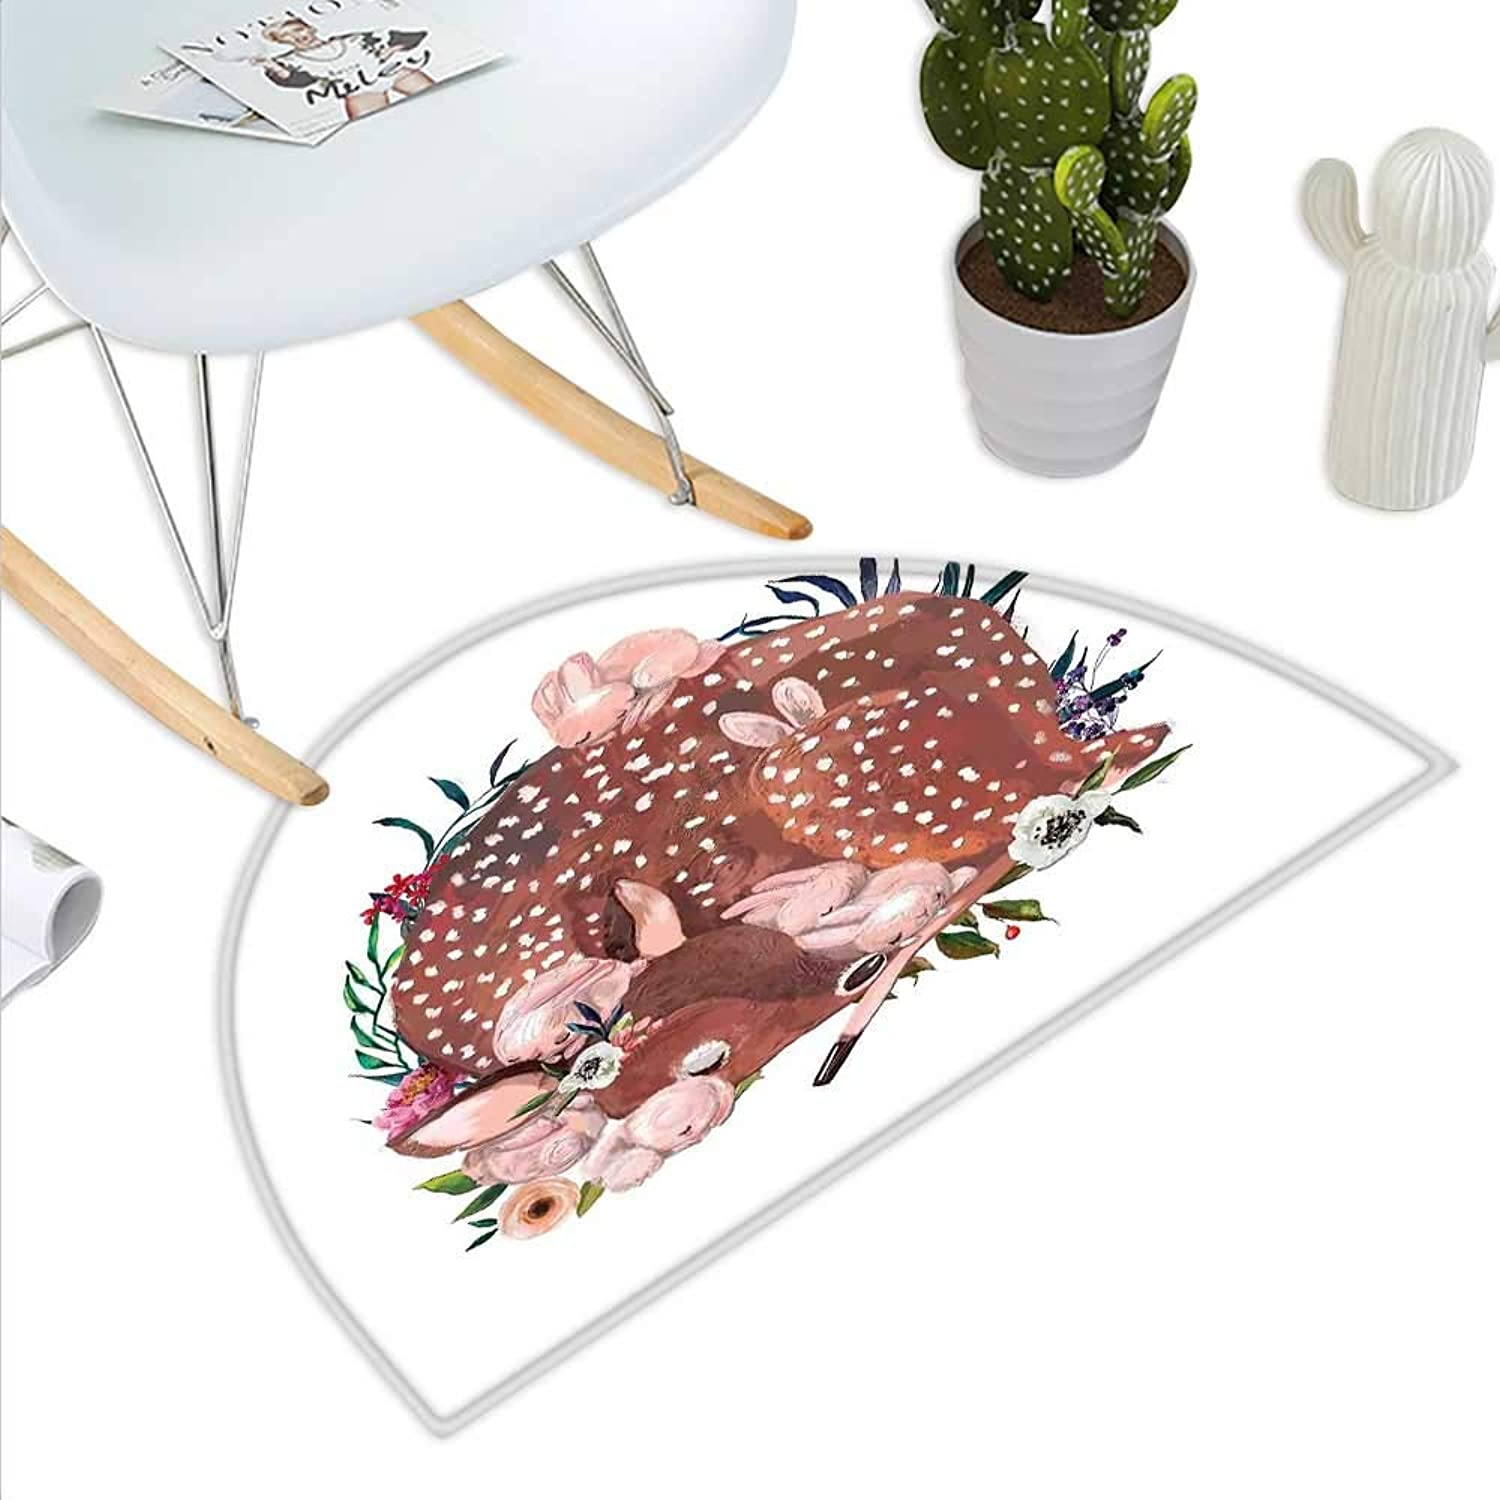 Kids Semicircle Doormat Artistic Illustration of a Deer with Hares Sleeping in The Forest Sweet Wildlife Theme Halfmoon doormats H 35.4  xD 53.1  Multicolor